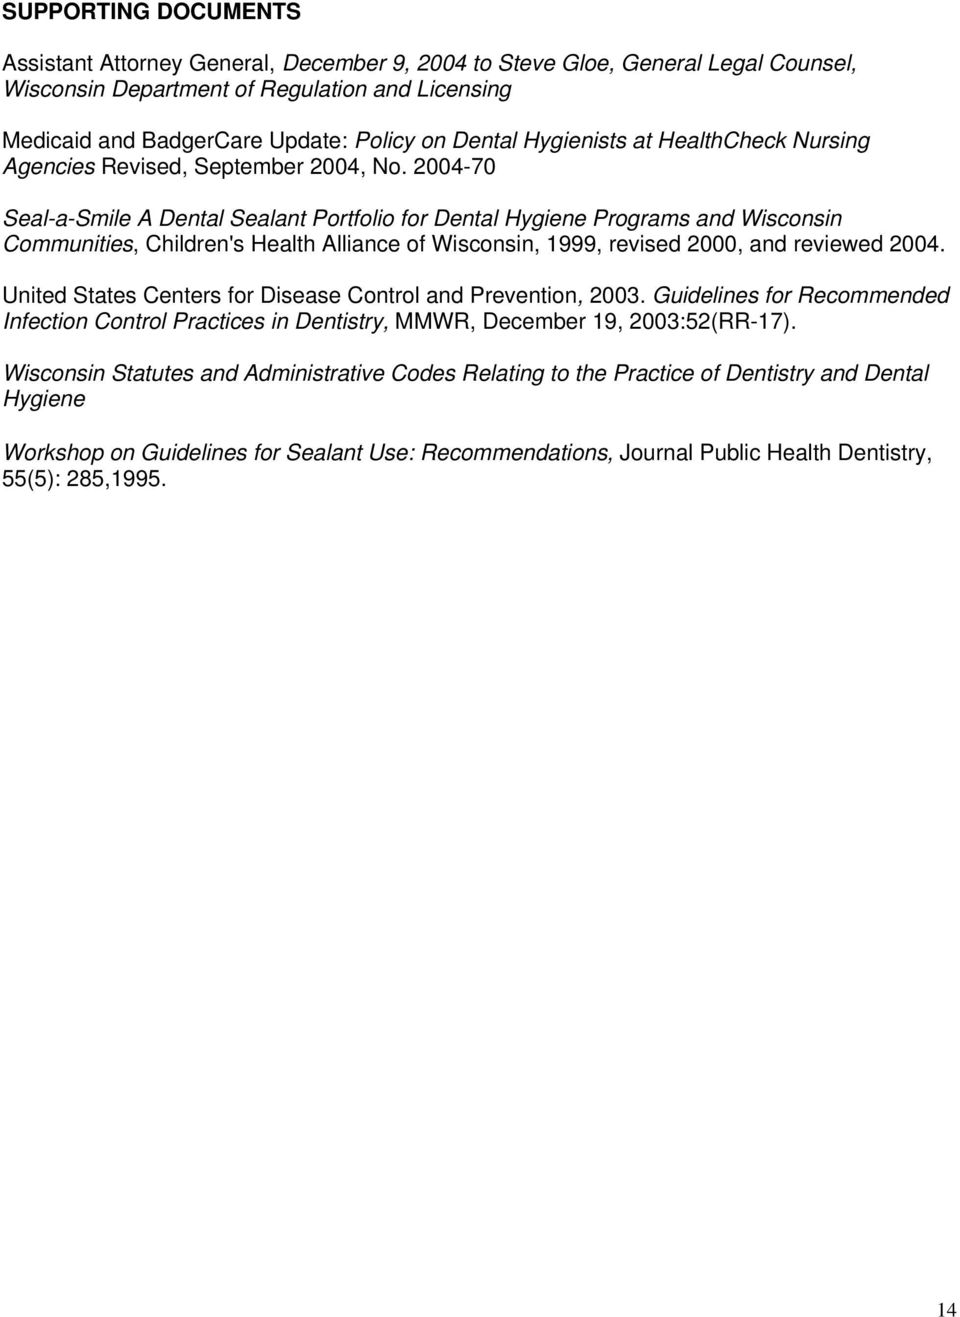 2004-70 Seal-a-Smile A Dental Sealant Portfolio for Dental Hygiene Programs and Wisconsin Communities, Children's Health Alliance of Wisconsin, 1999, revised 2000, and reviewed 2004.